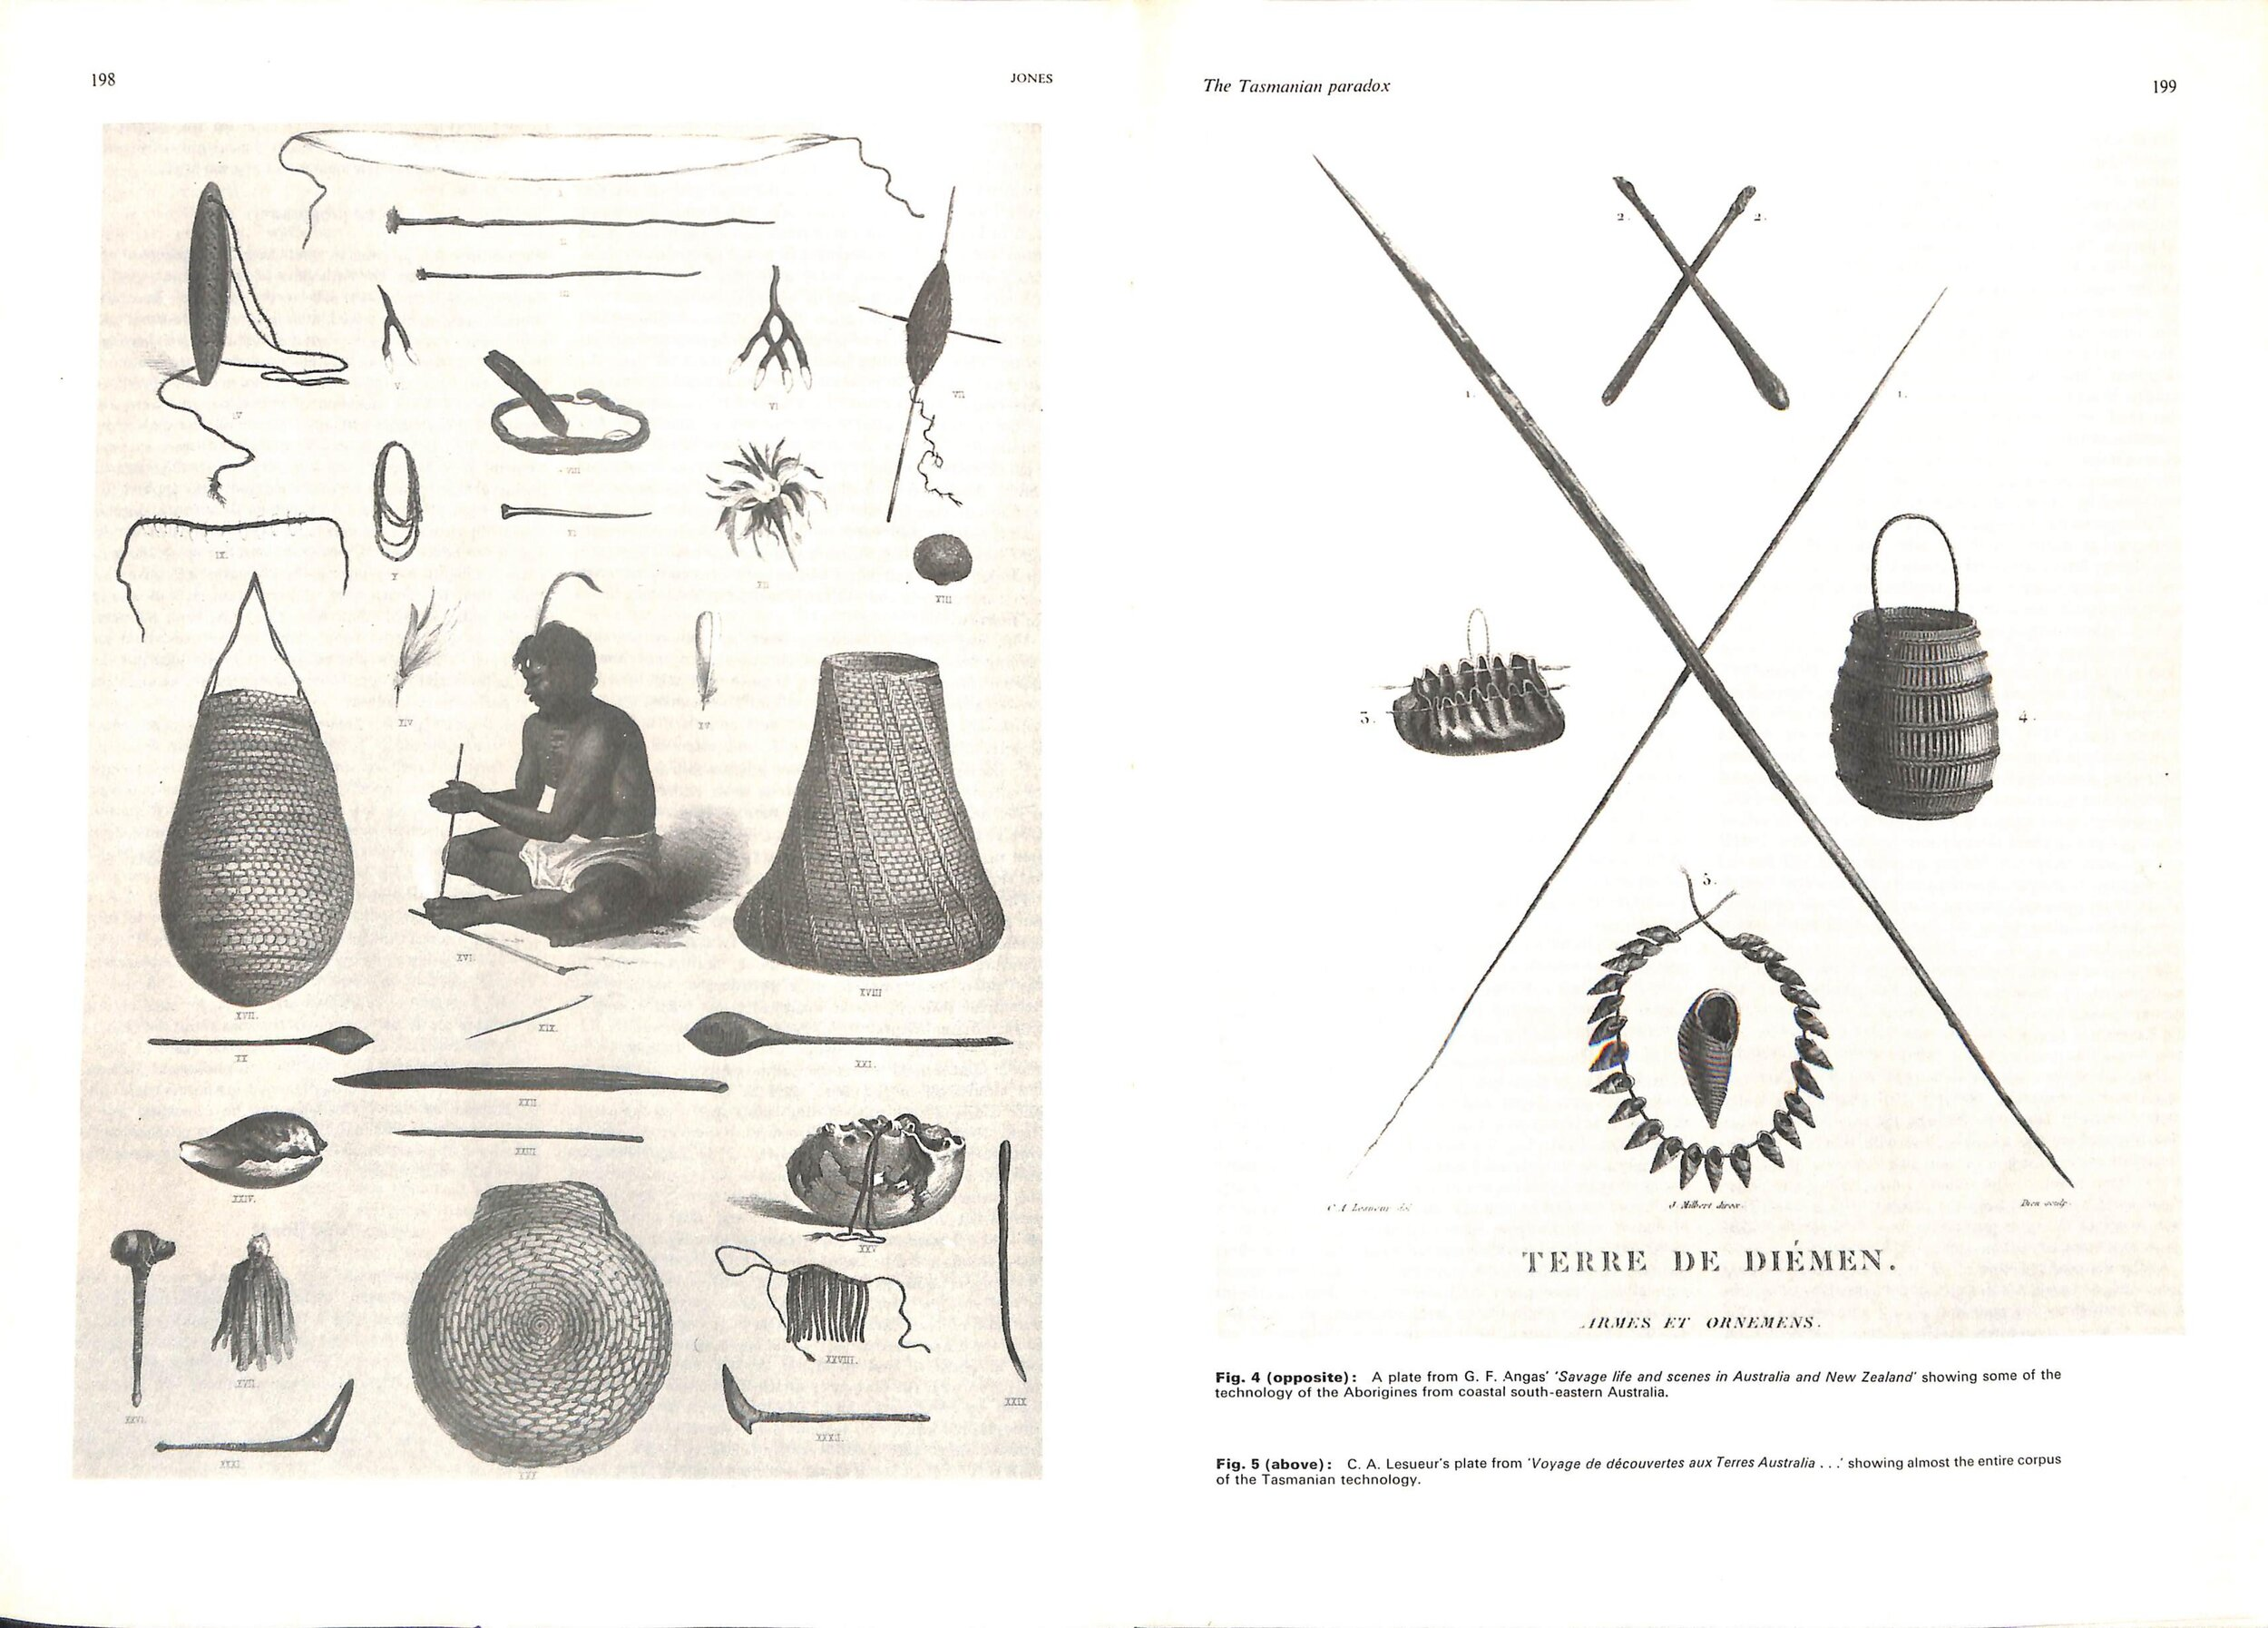 - There is no record in the early ethnographers collections of any 'hoe-like' implement, or any stone Bogan pick-like item, that was recorded as being used as a soil-cultivating hoe, as claimed by Mr Pascoe.Here are diagrams of the tool kits of the Aborigines from SE Australia and Tasmania - no Bogan pick 'hoes' to be seen.